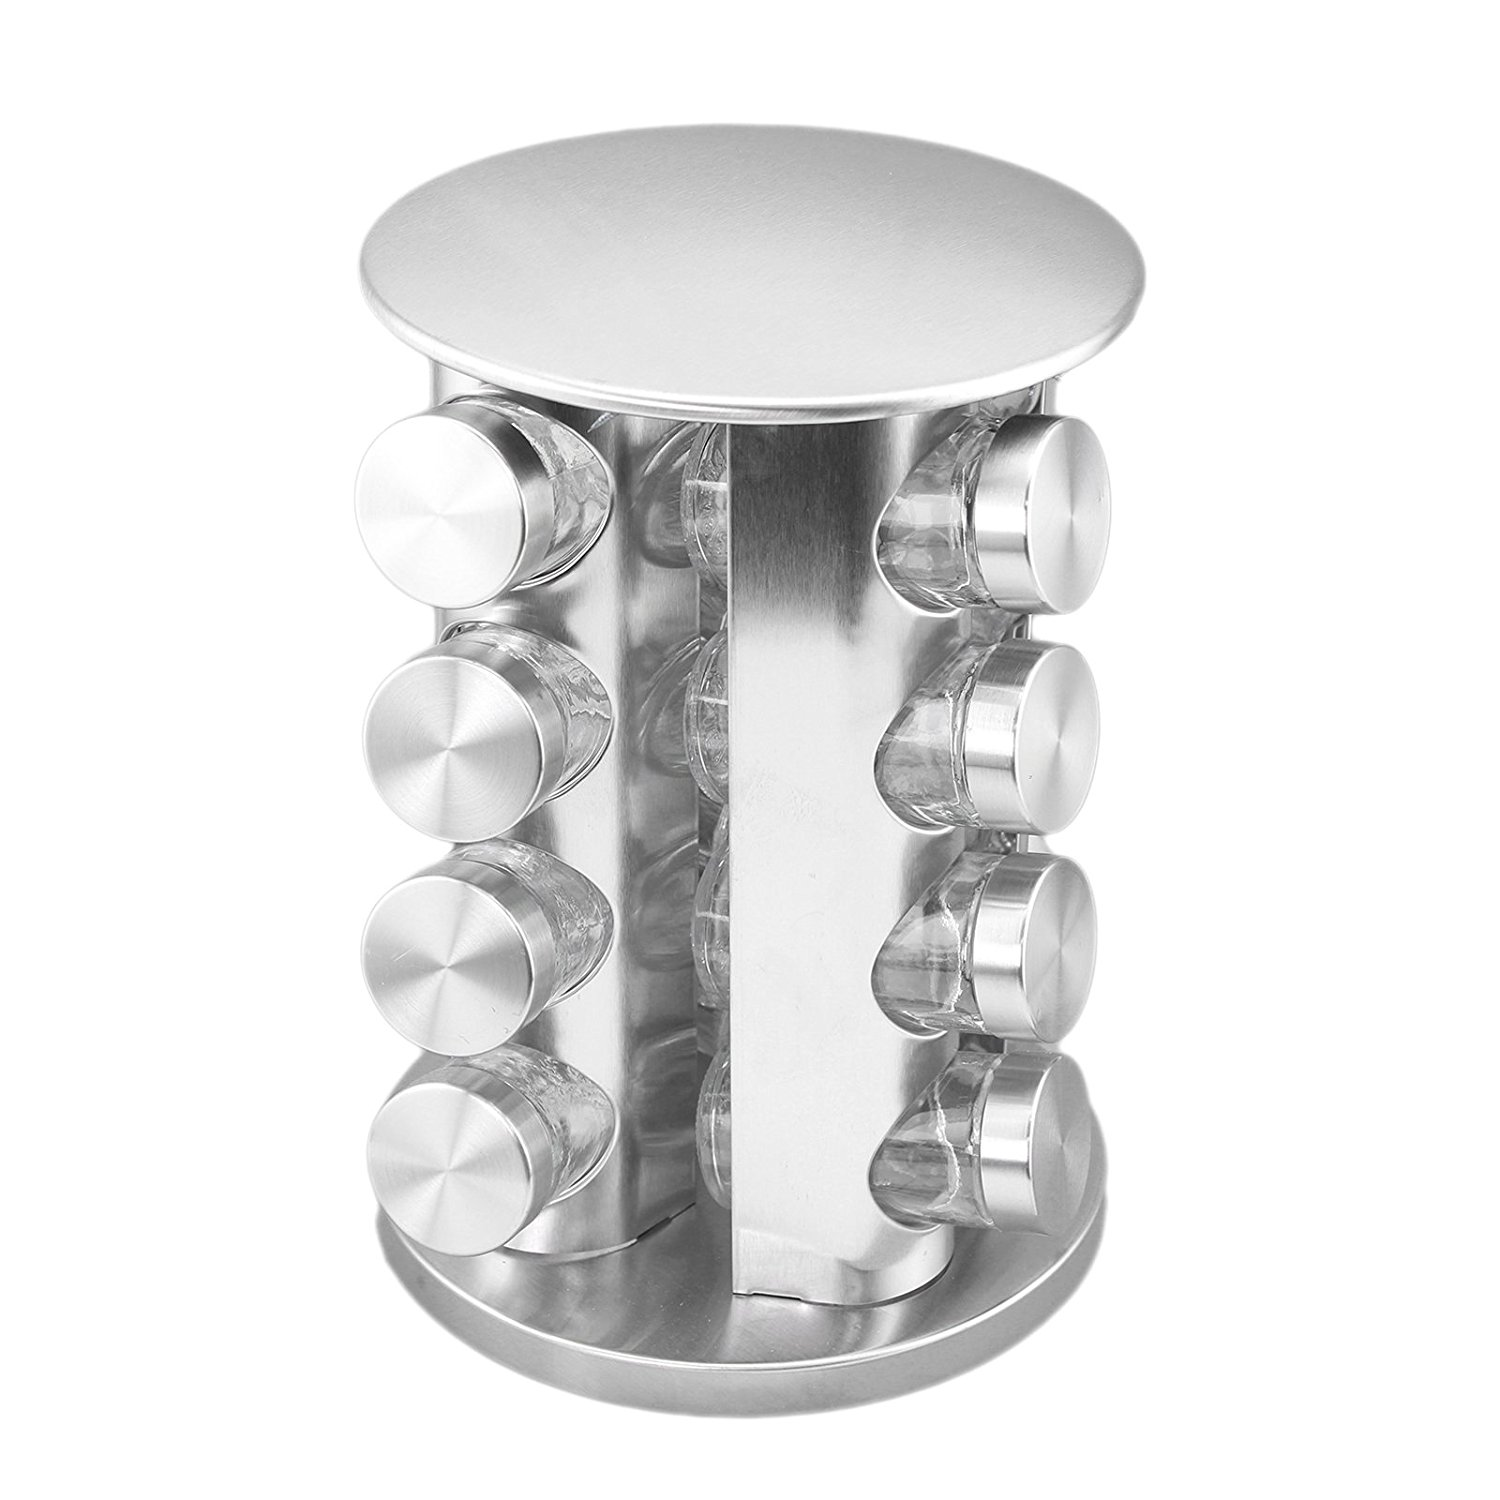 Round Revolving Stainless Steel Spice Tower Rack Carousel...